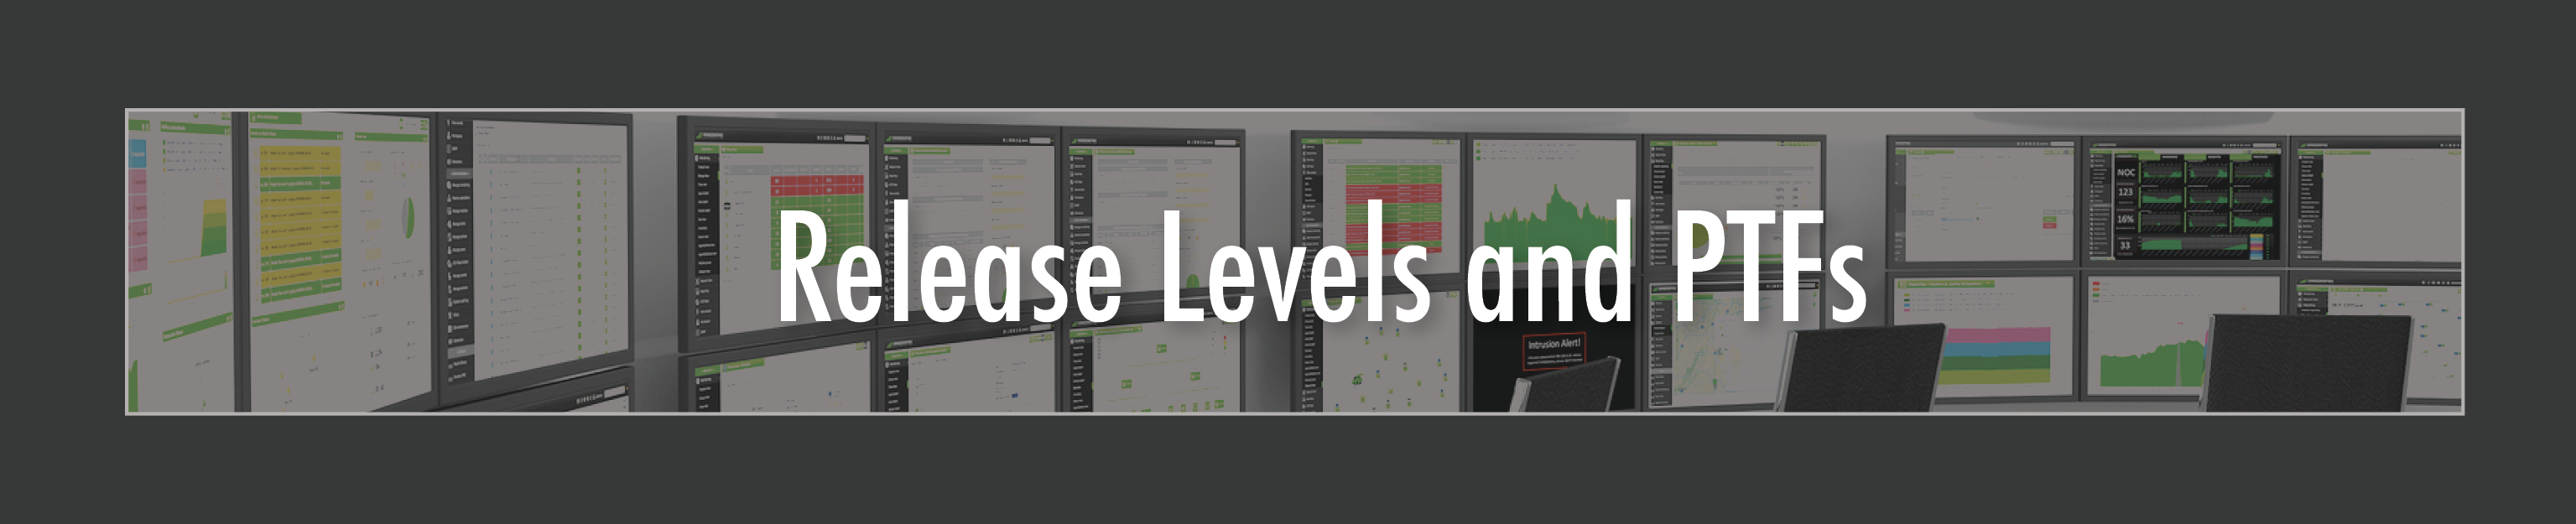 Release Levels and PTFs